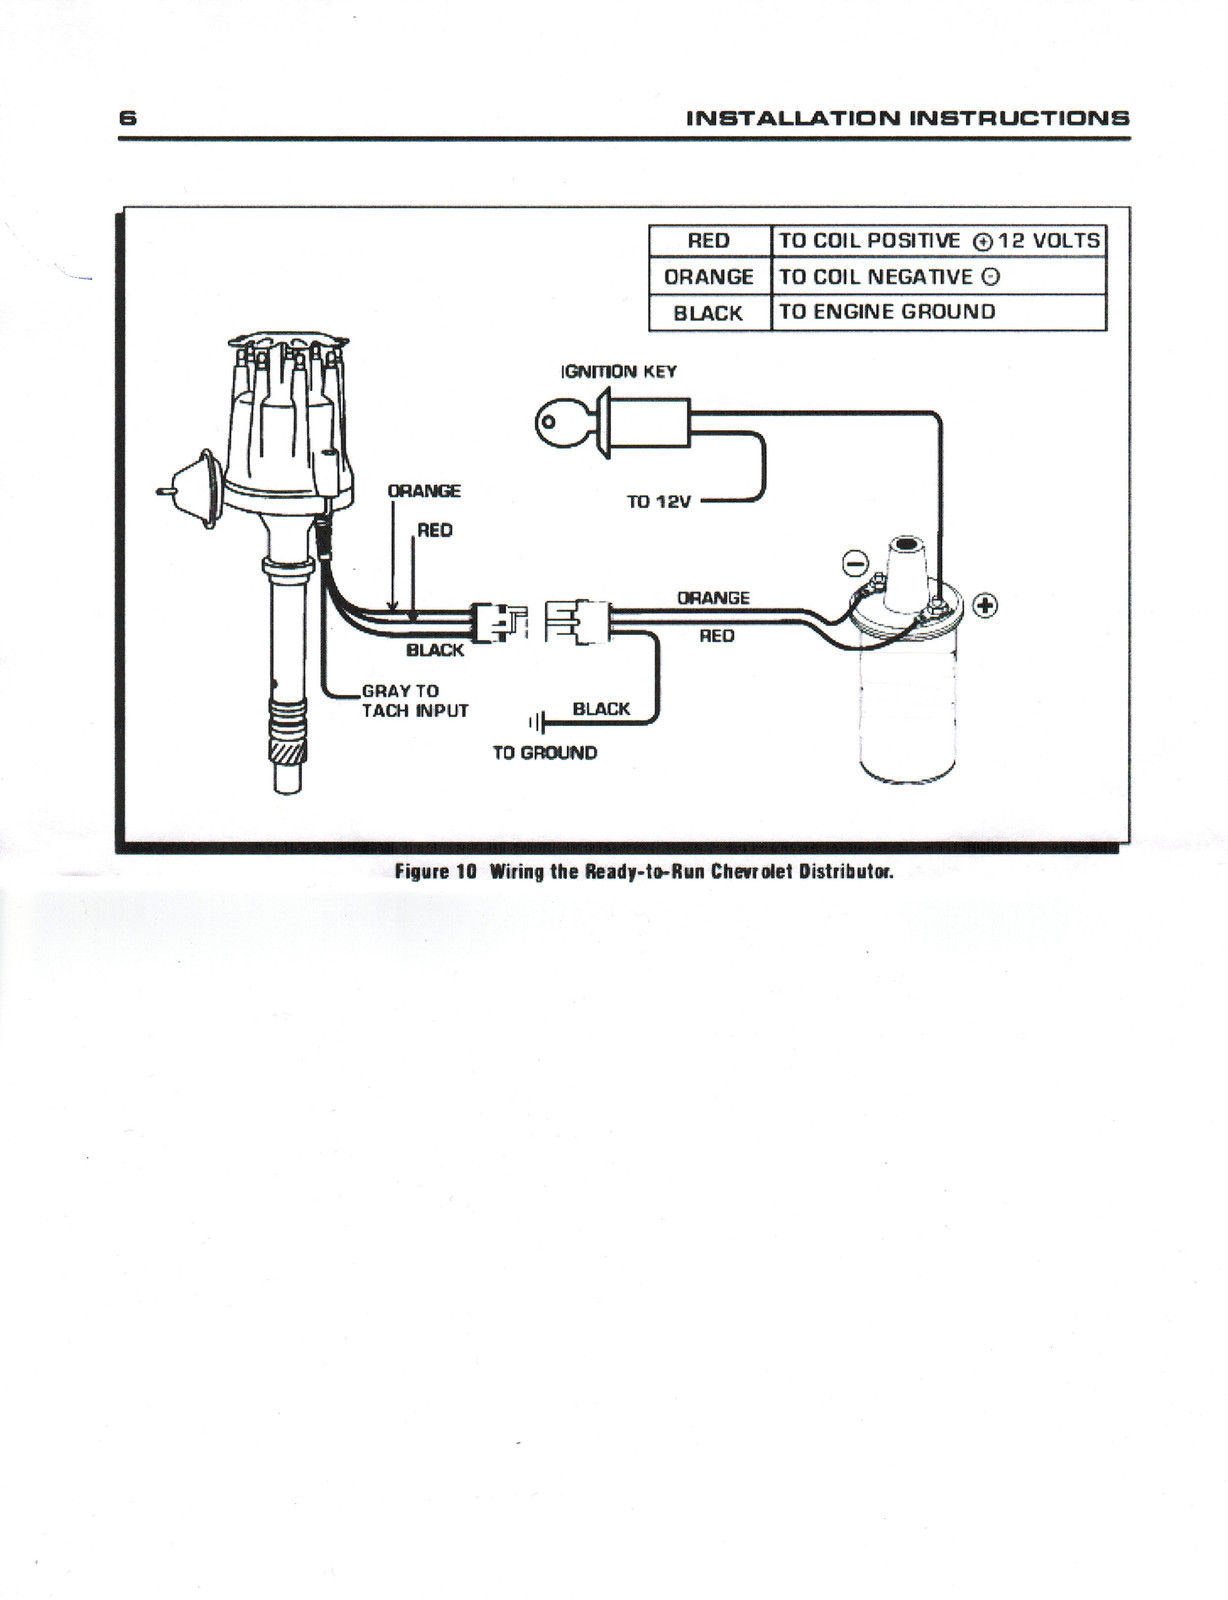 1957 Chevrolet Wiring Diagram from swapmeetparts.com